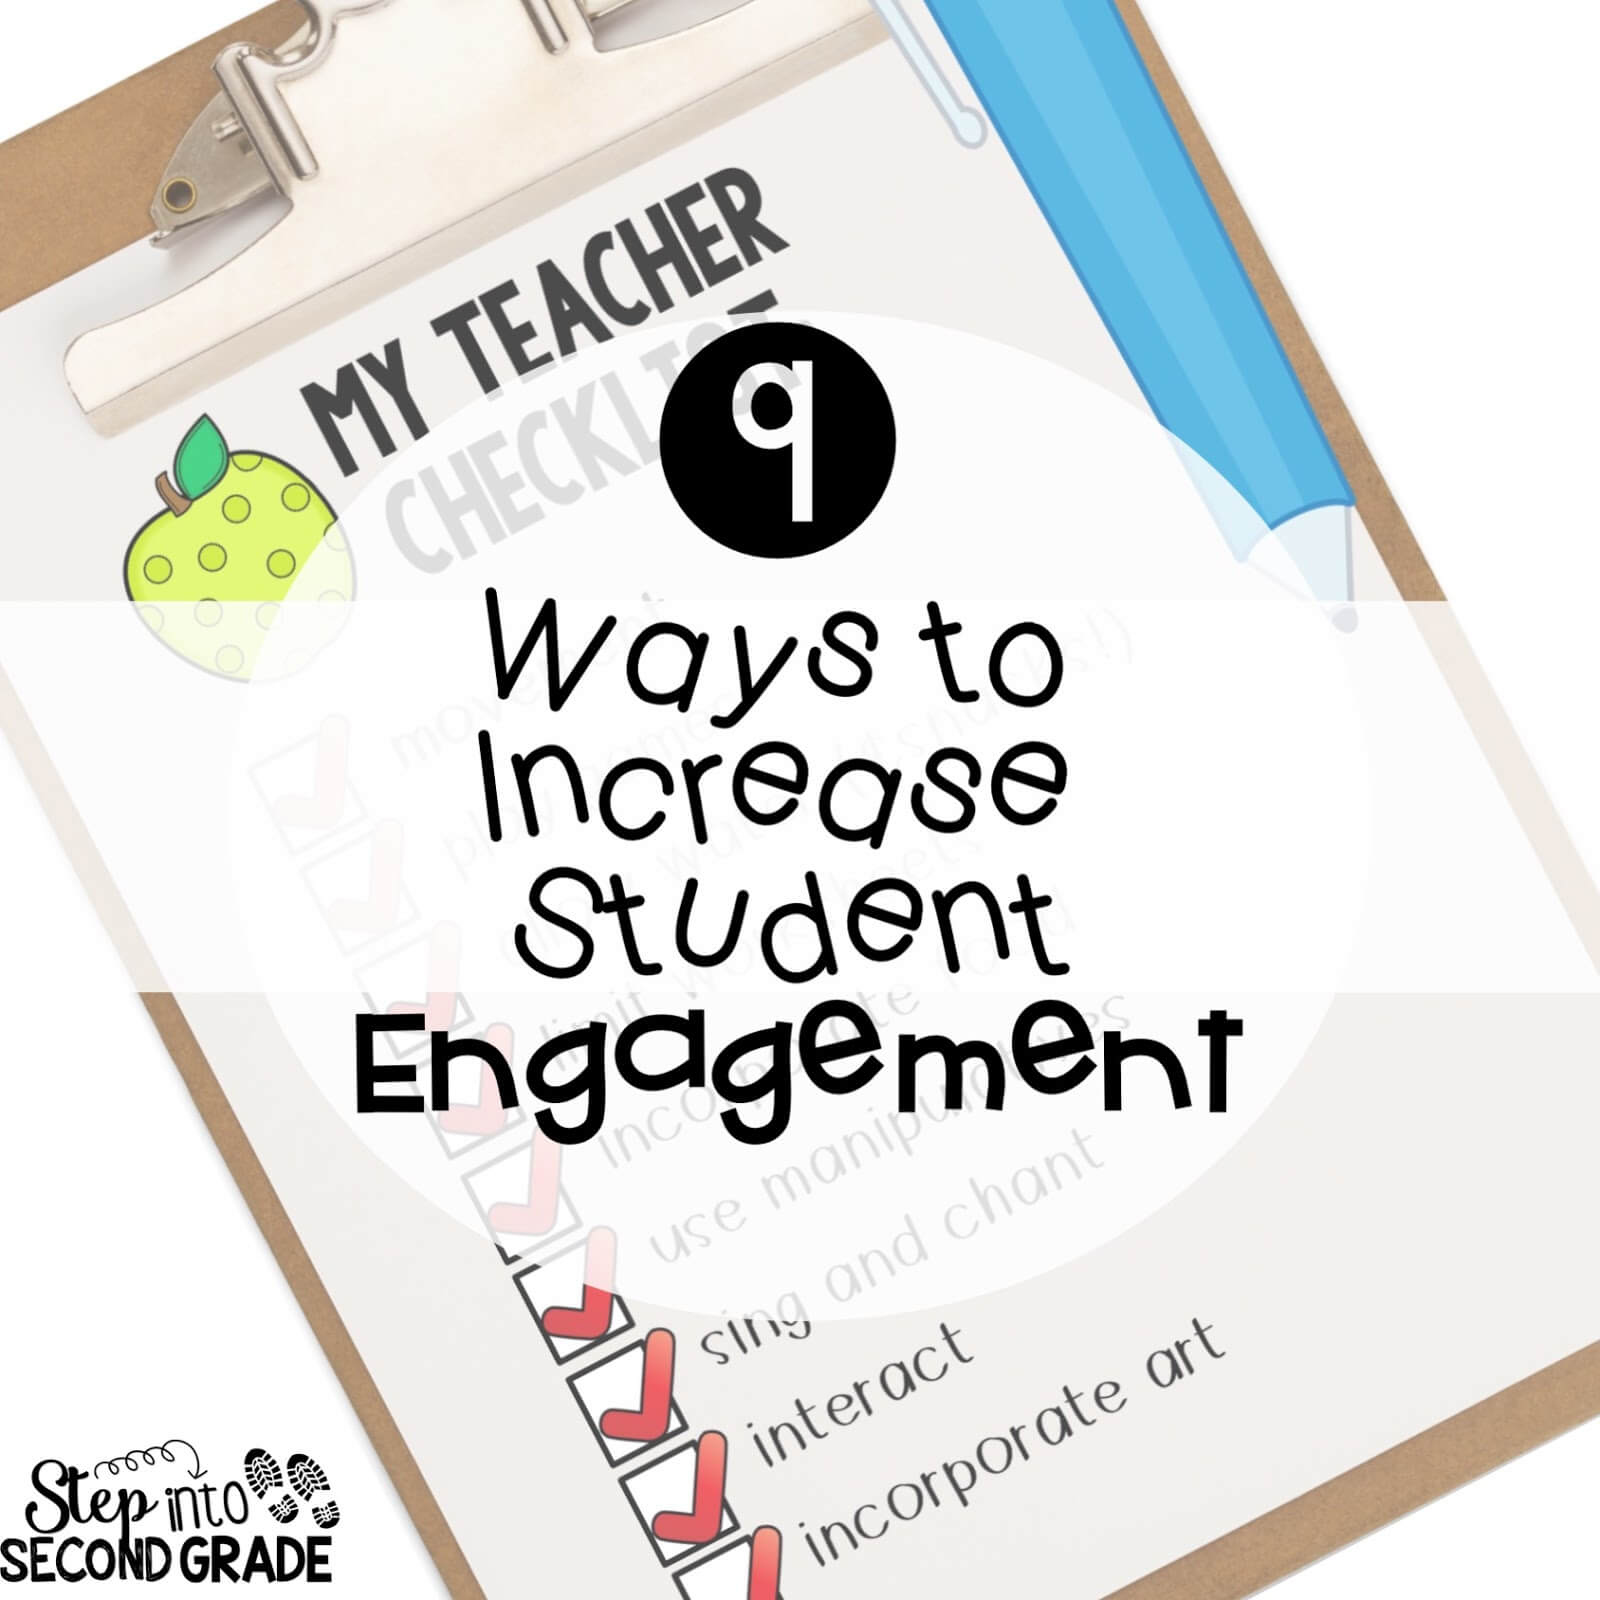 9 Ways to Increase Student Engagement - Step into 2nd Grade